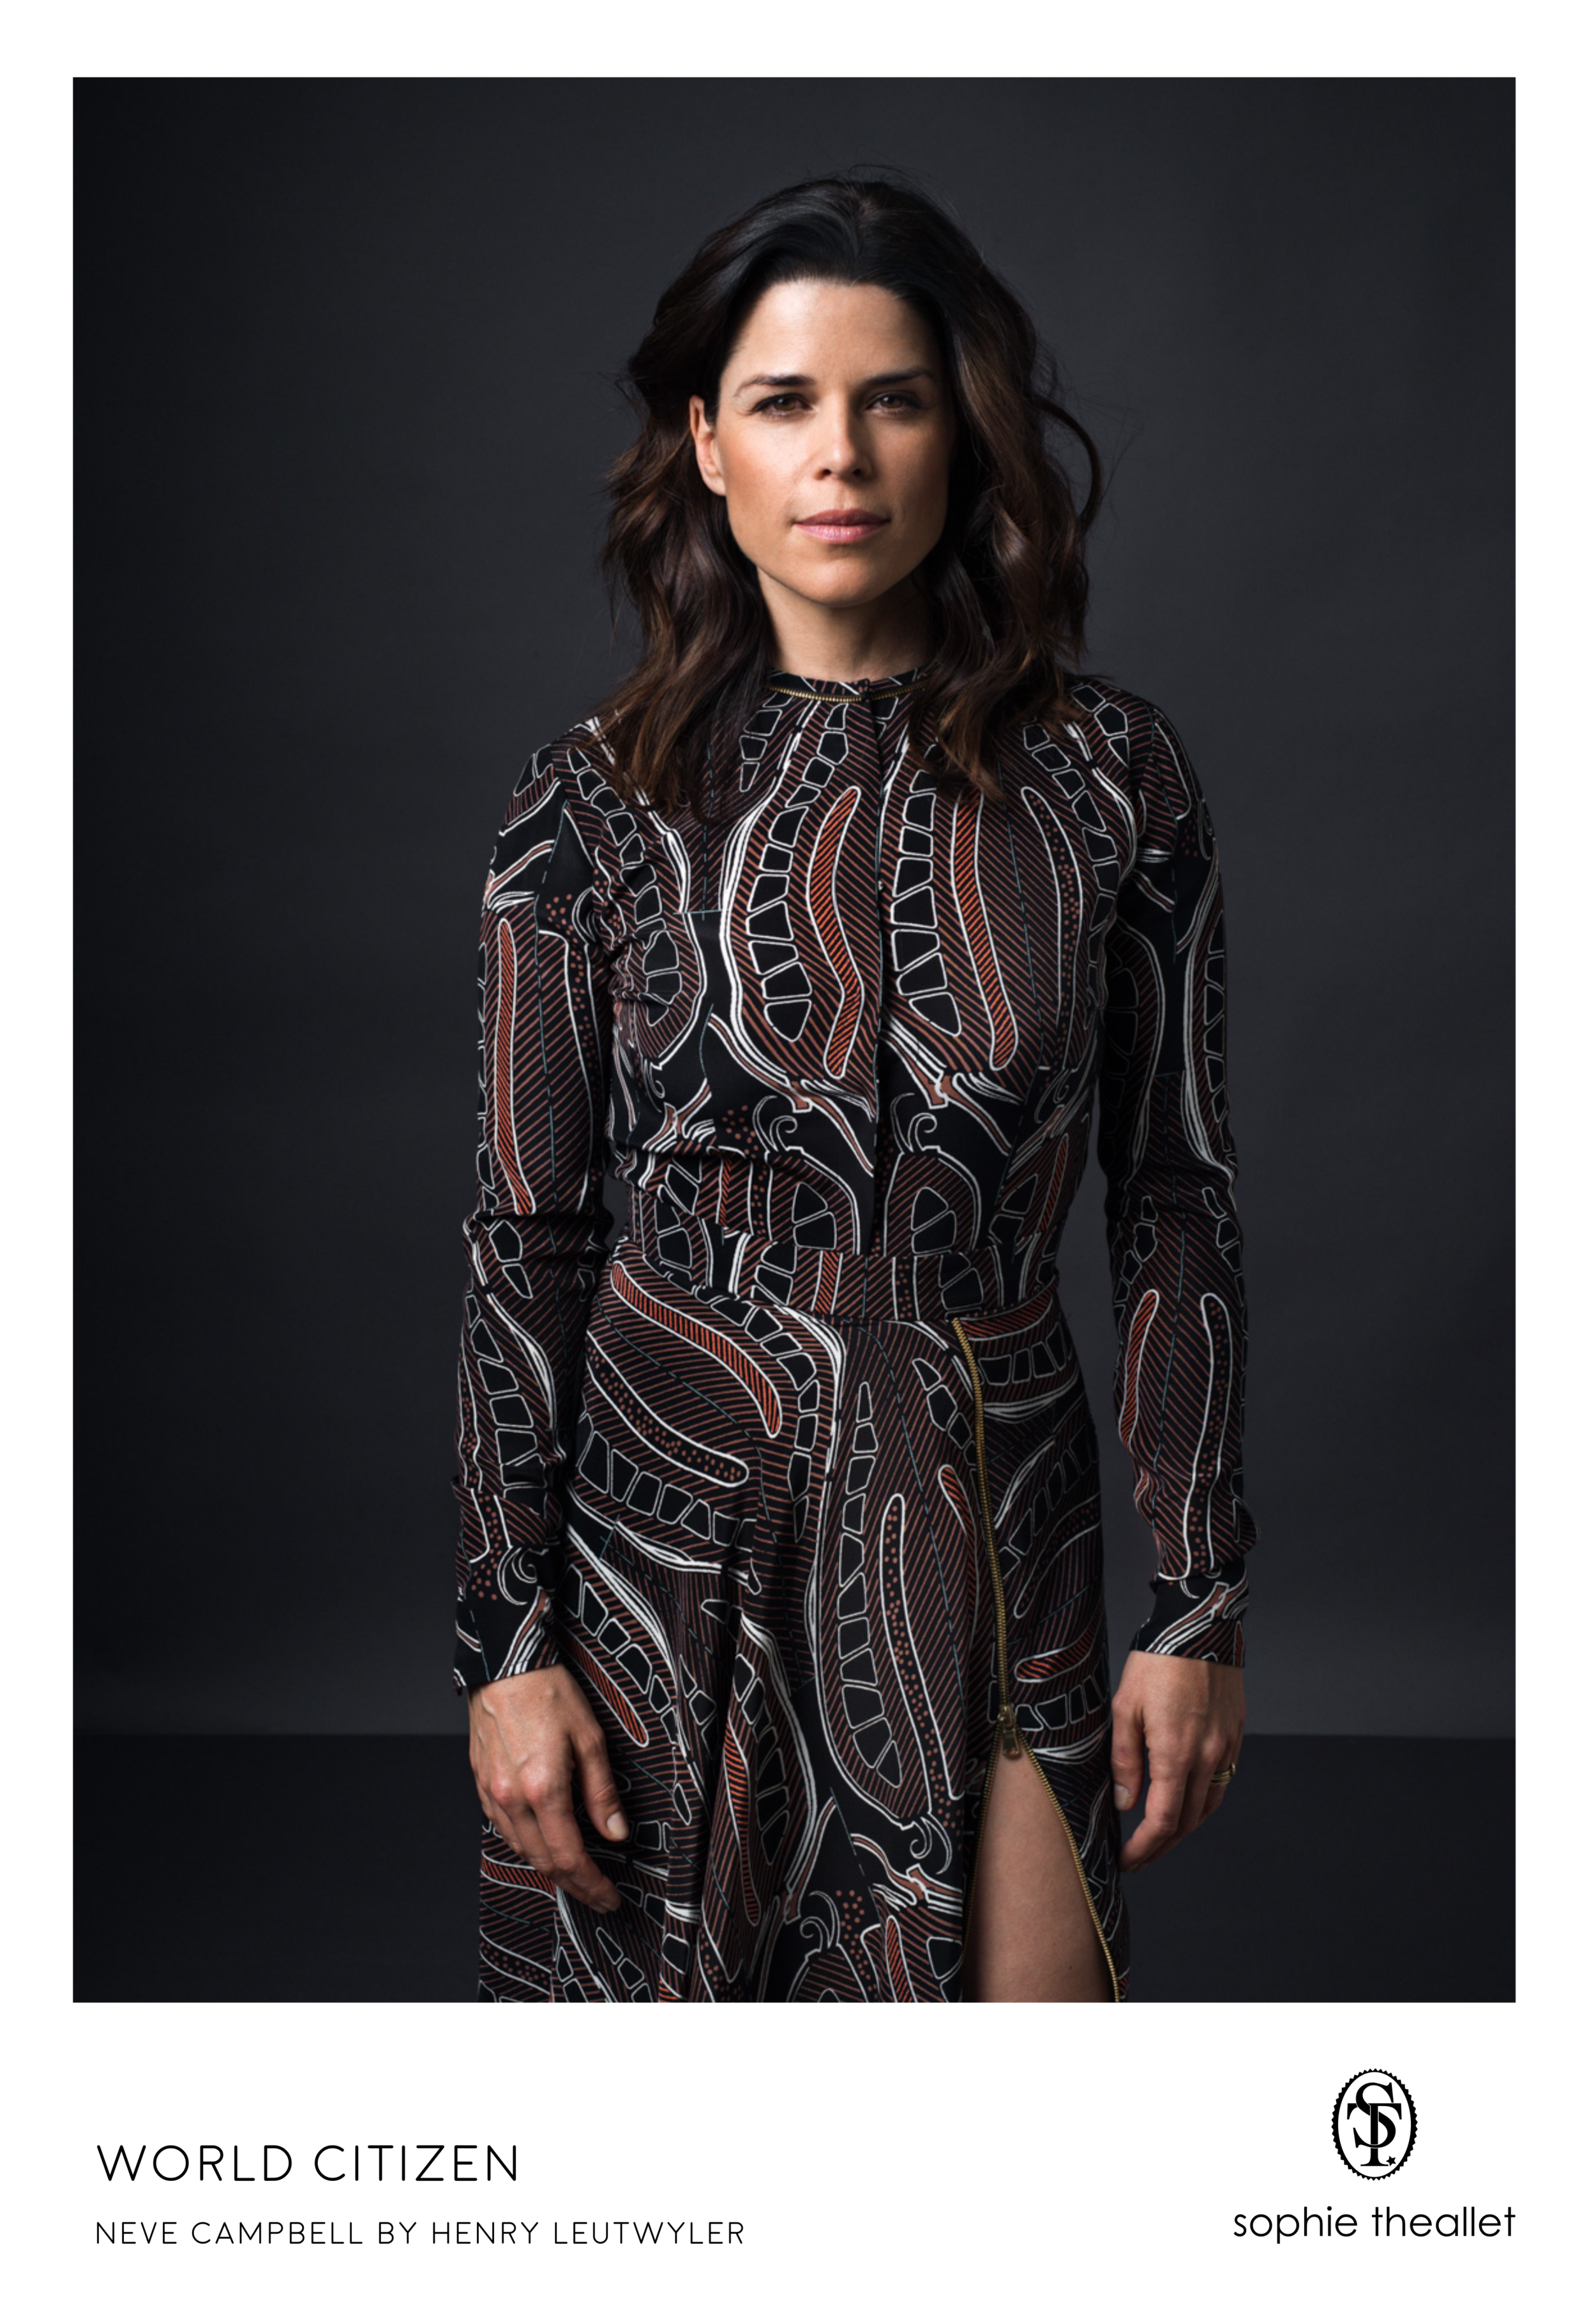 Neve Campbell by Henry Leutwyler - sophie theallet SS17